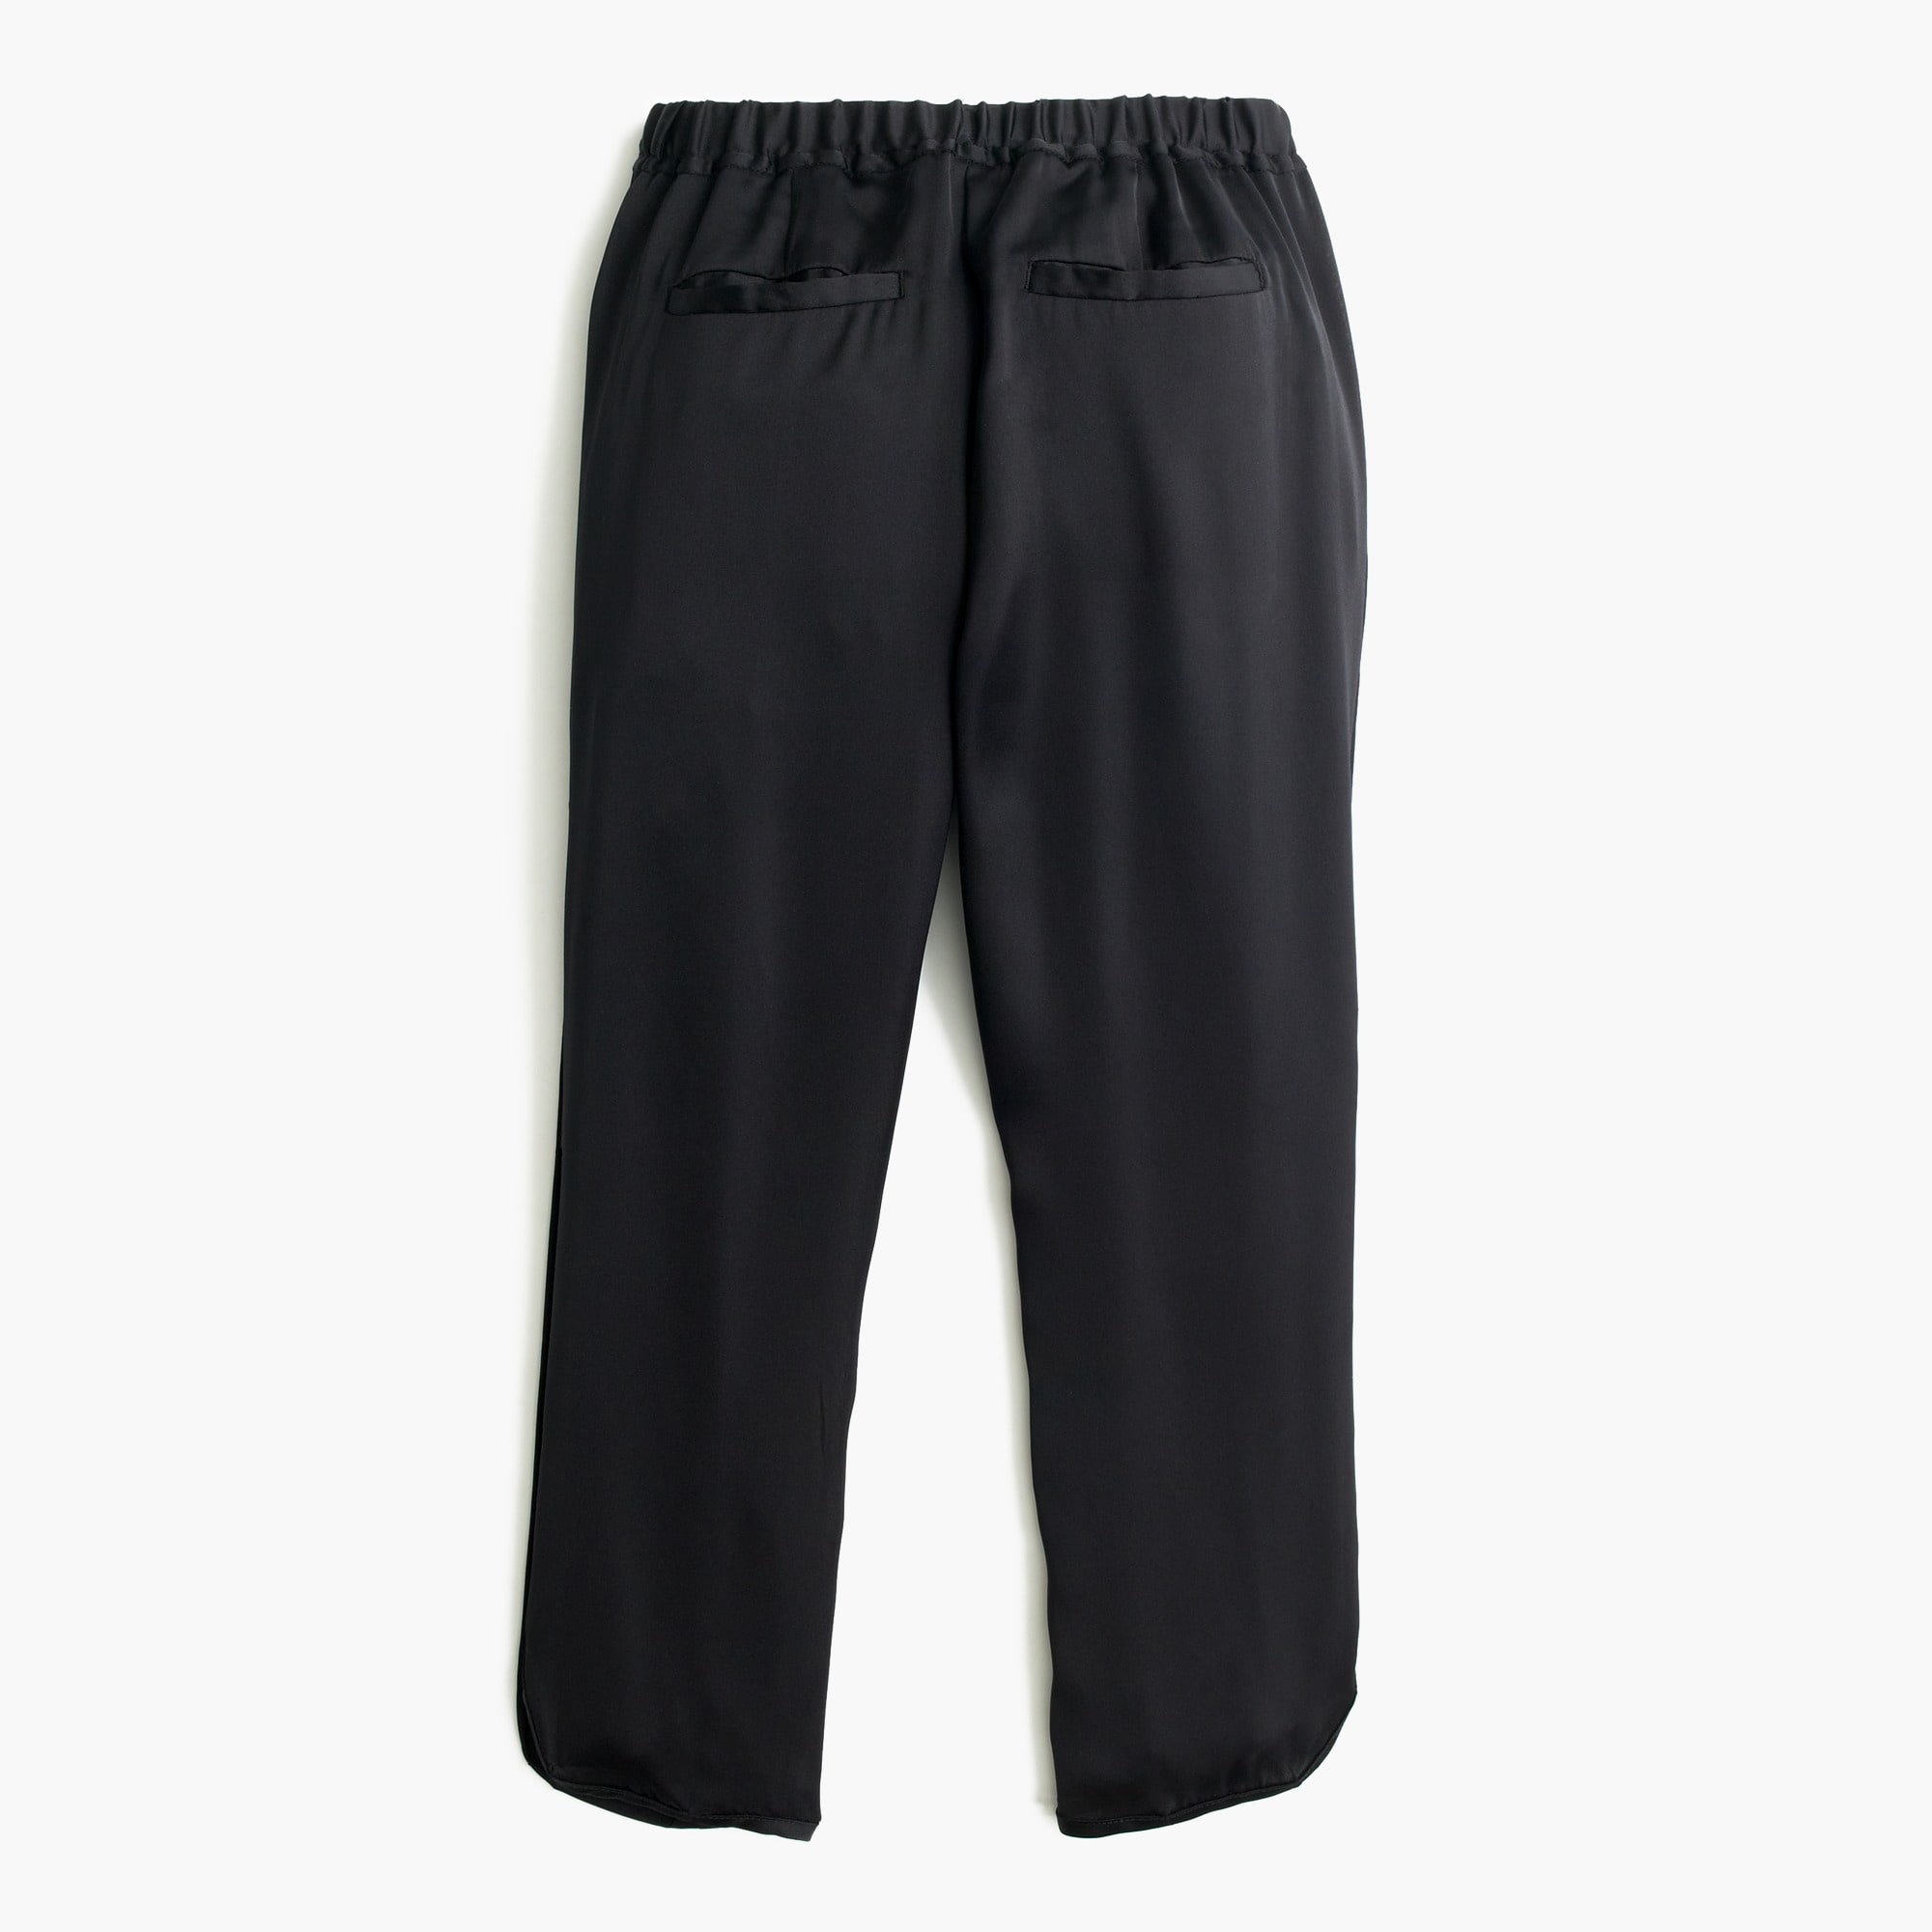 Girls' drapey pull-on pant